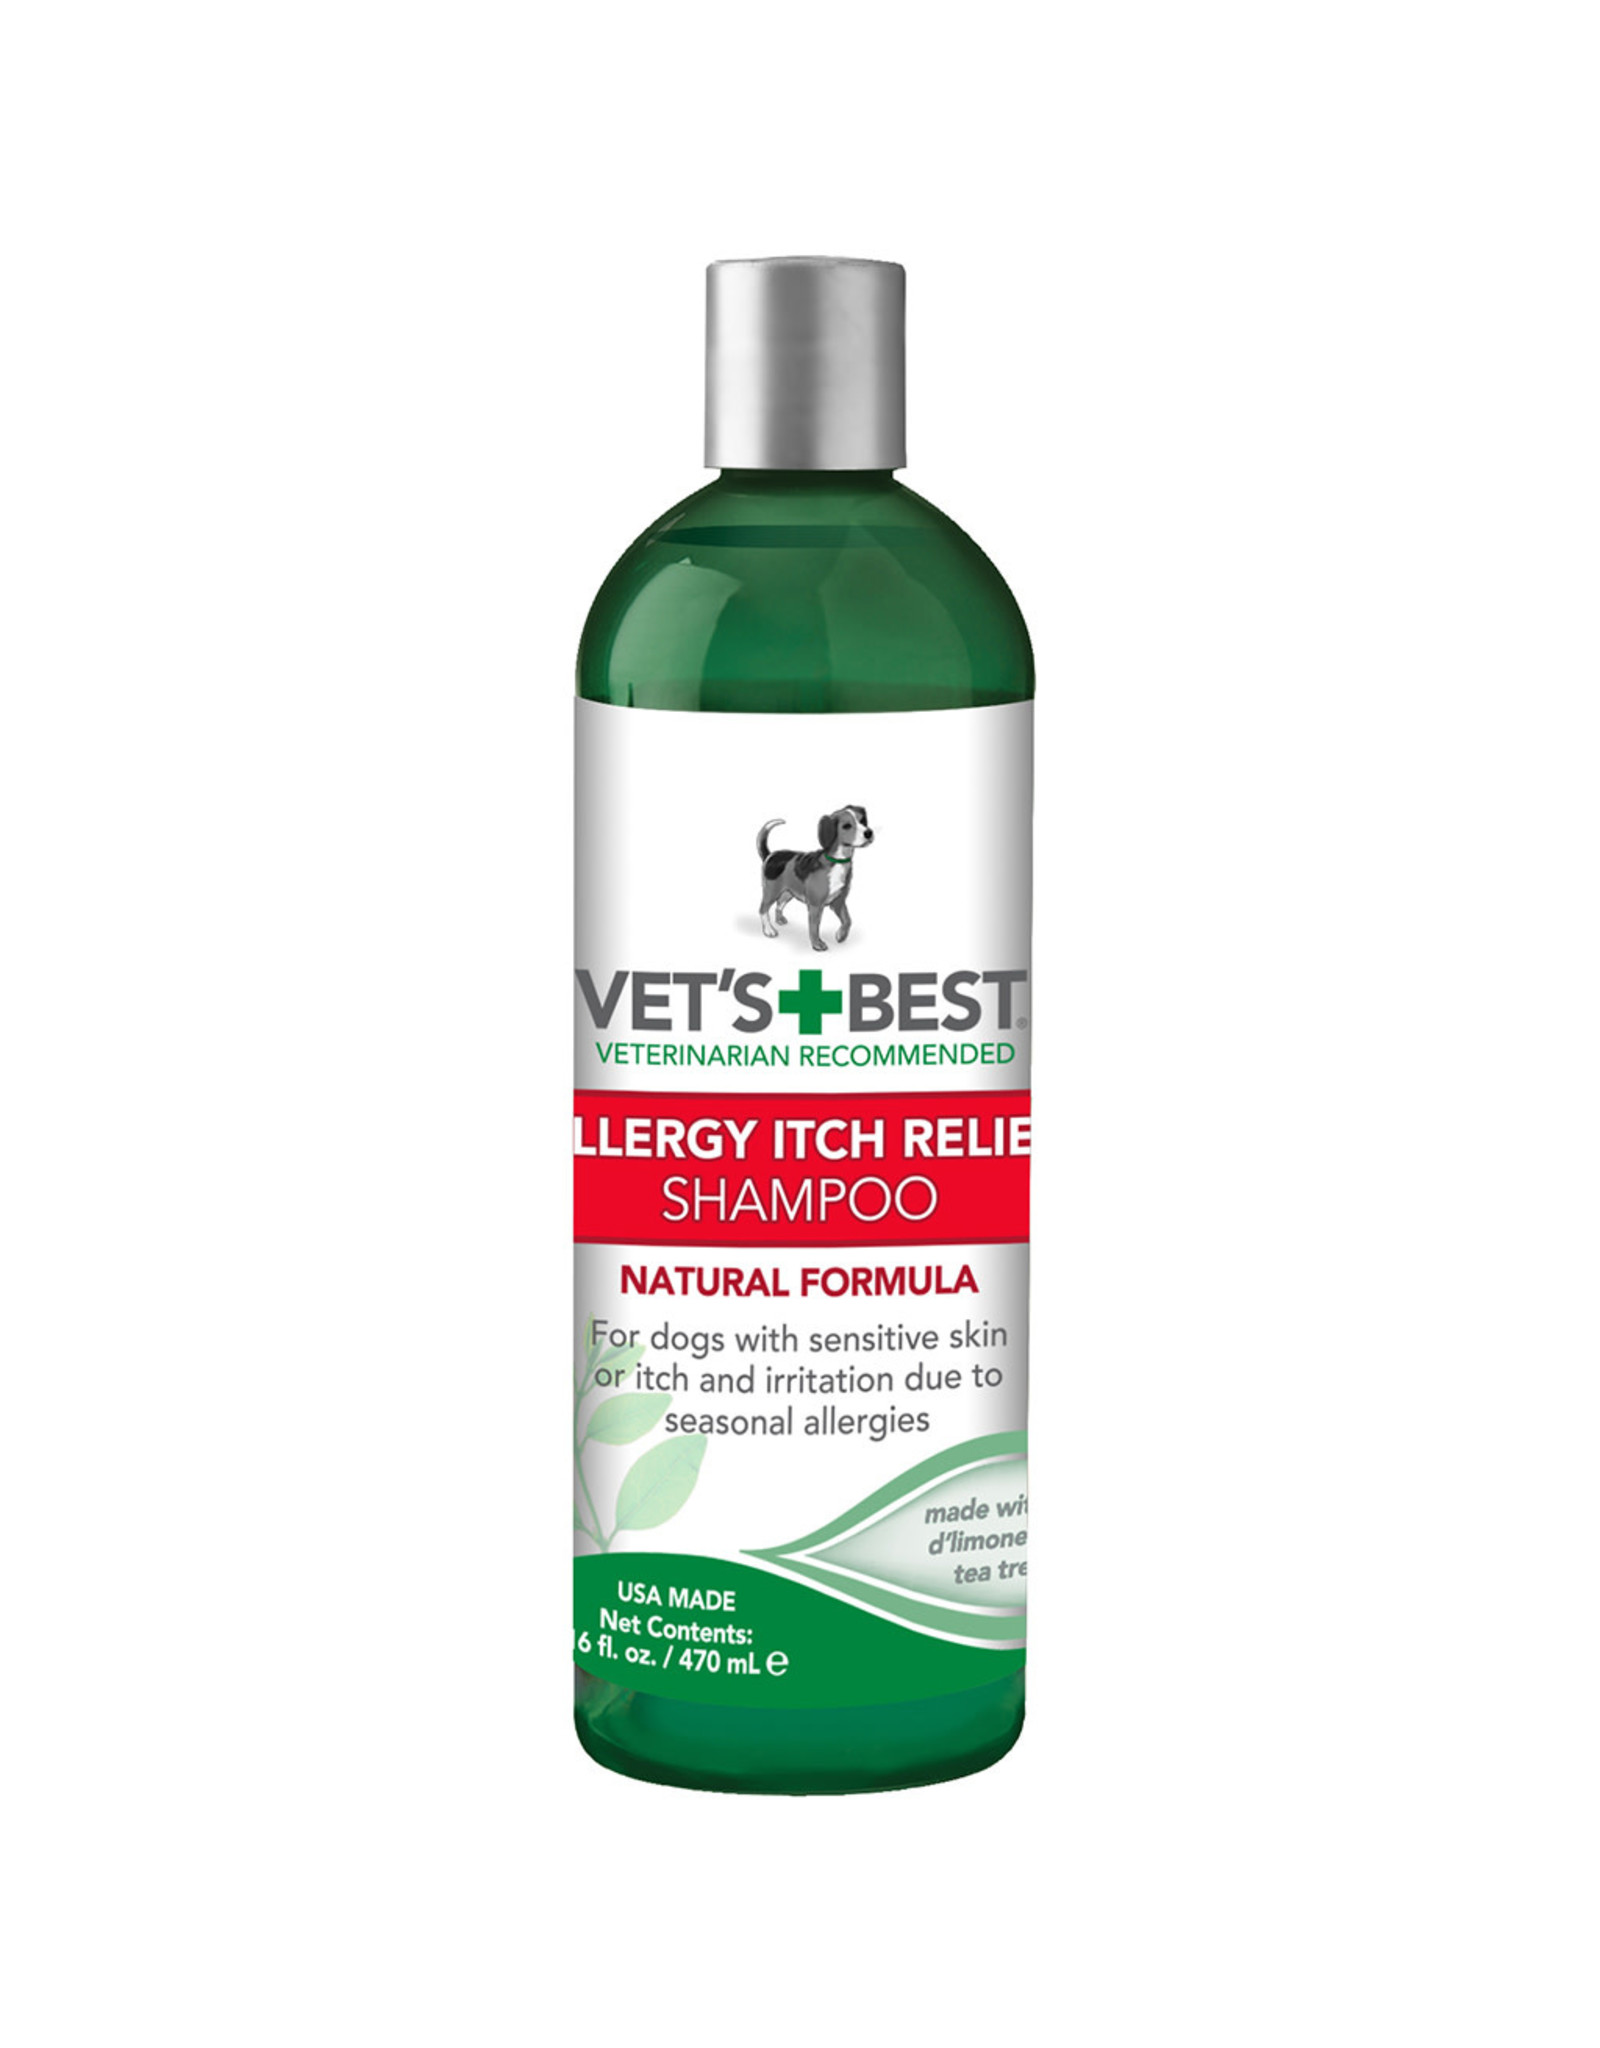 Vets Best Allergy Itch Relief Shampoo 16 OZ